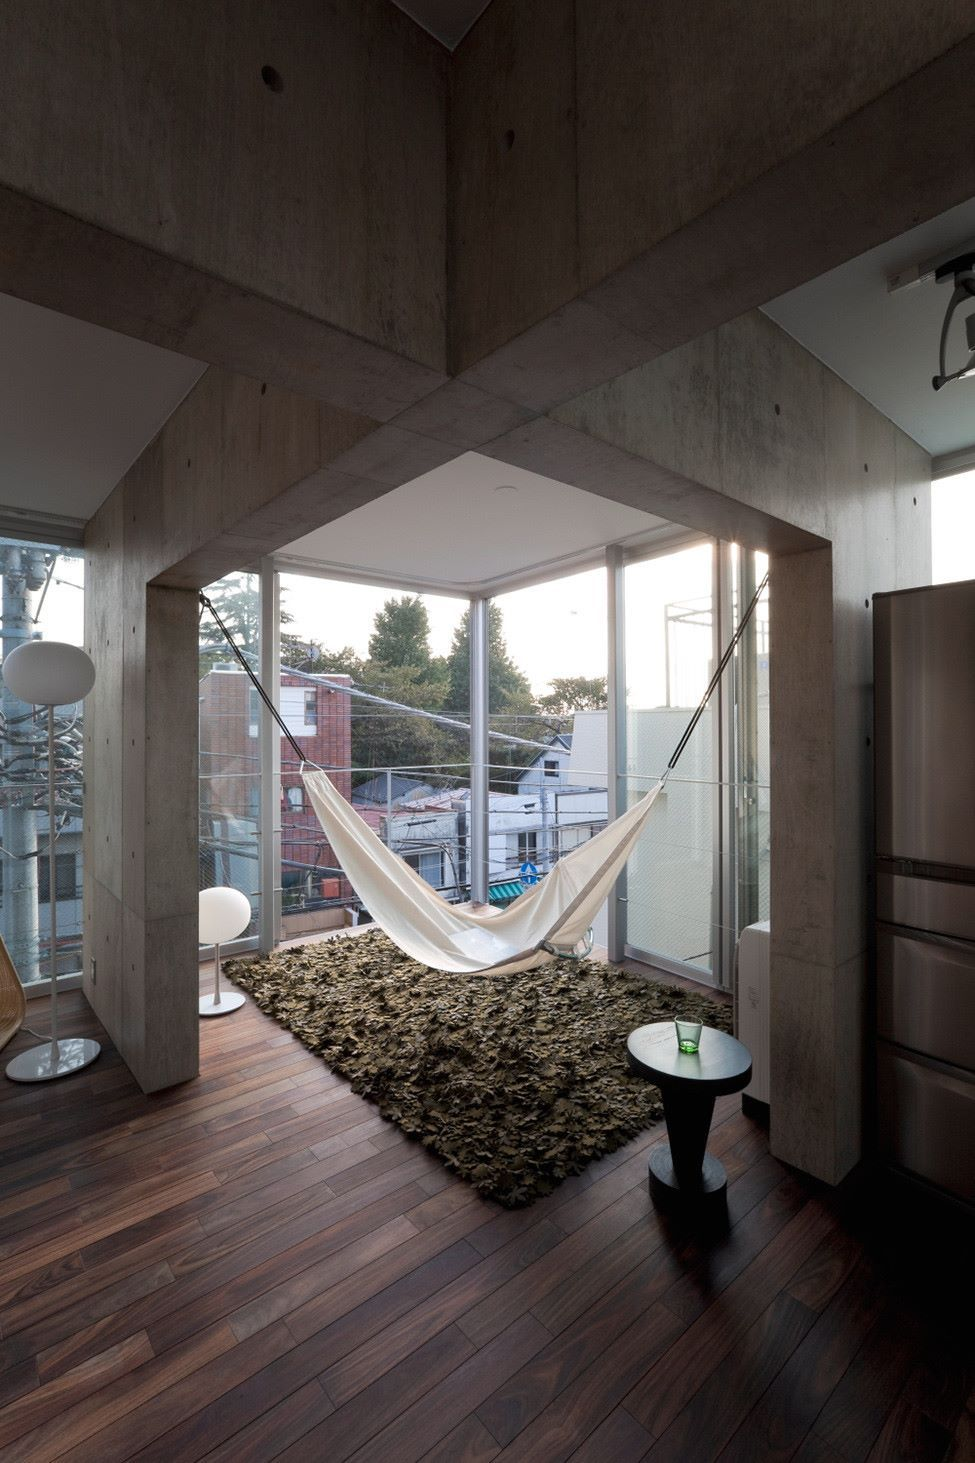 It Is The Lease Collective Housing Built In Uehara, Downtown Of Tokyo. It  Offering The Open And Free Places Fit For The State Of New City Privacy.